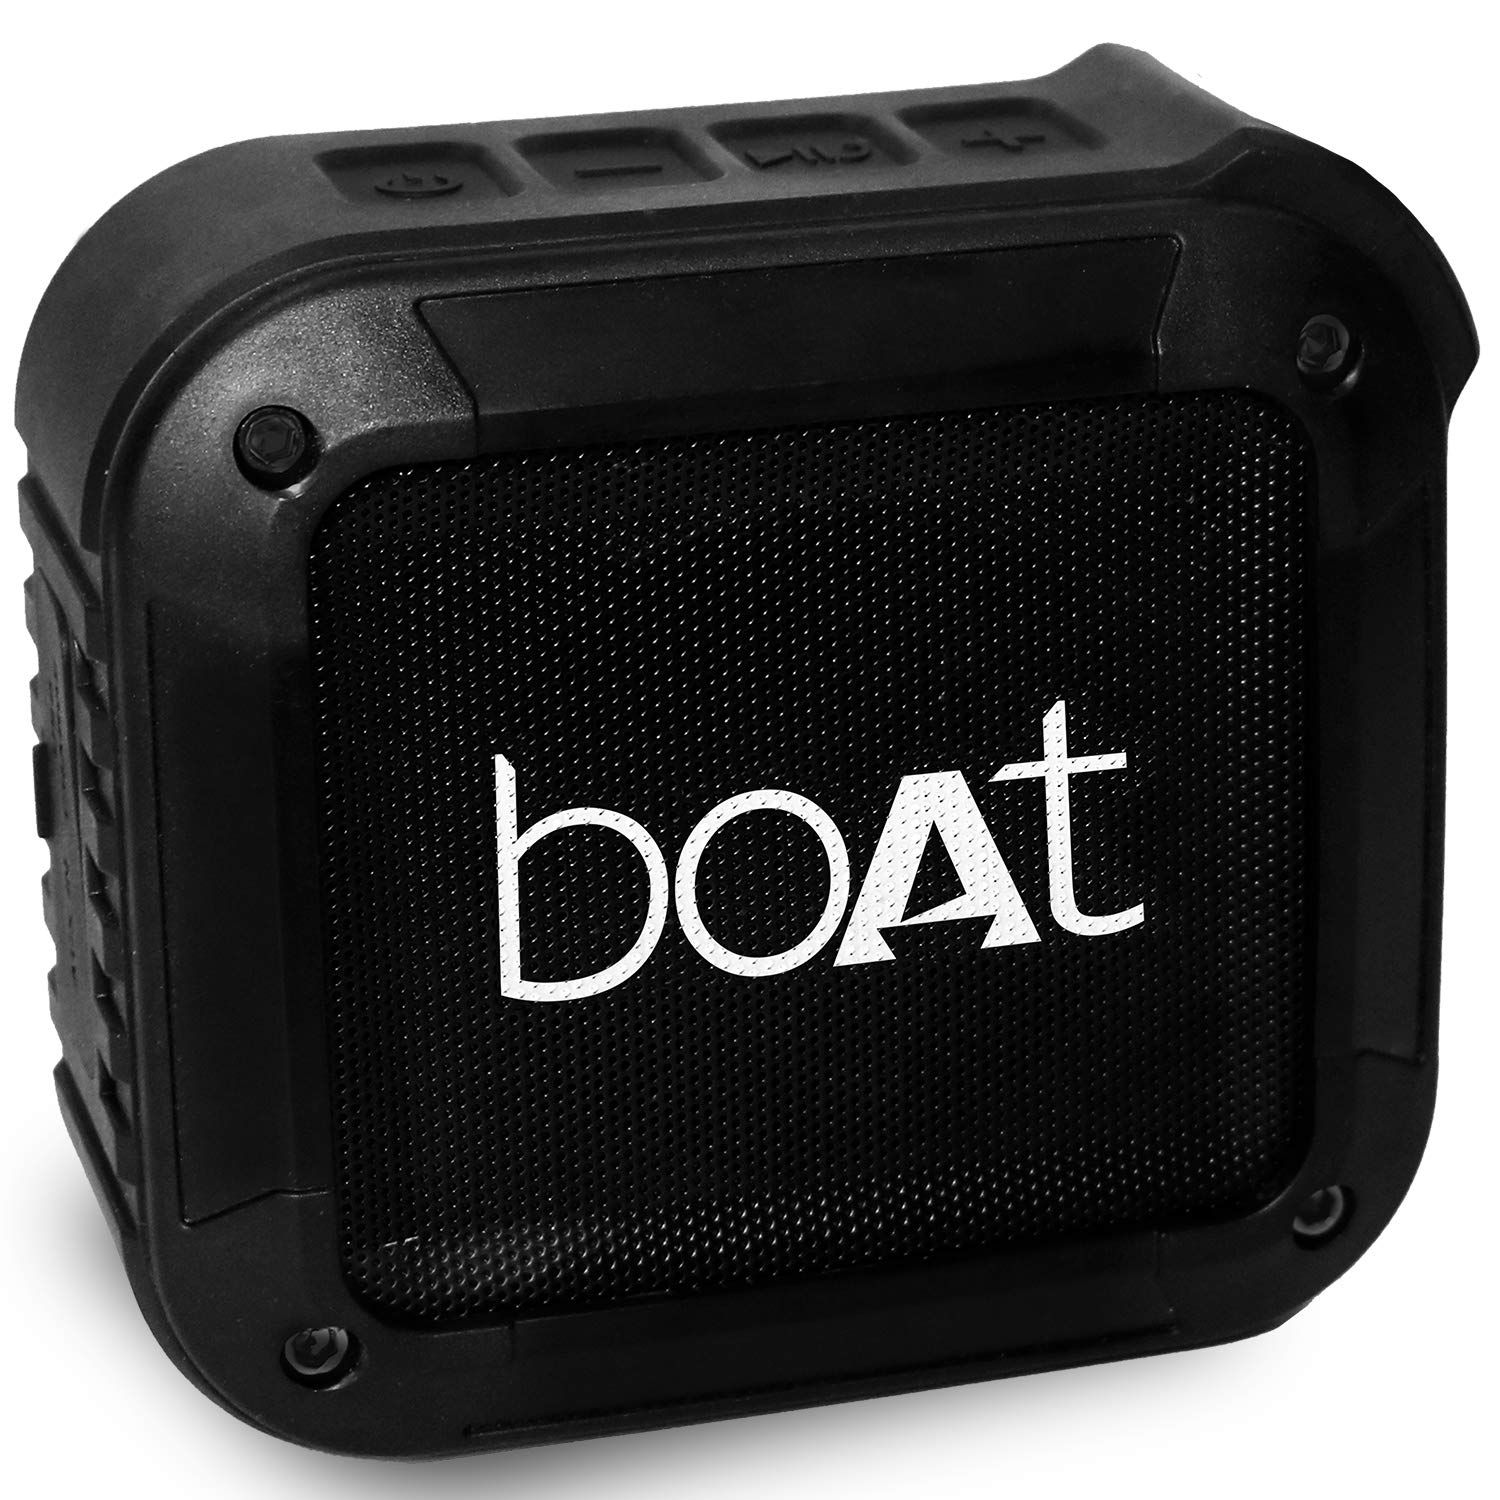 Boat Stone 210 Bluetooth Speaker With Mic (Black)